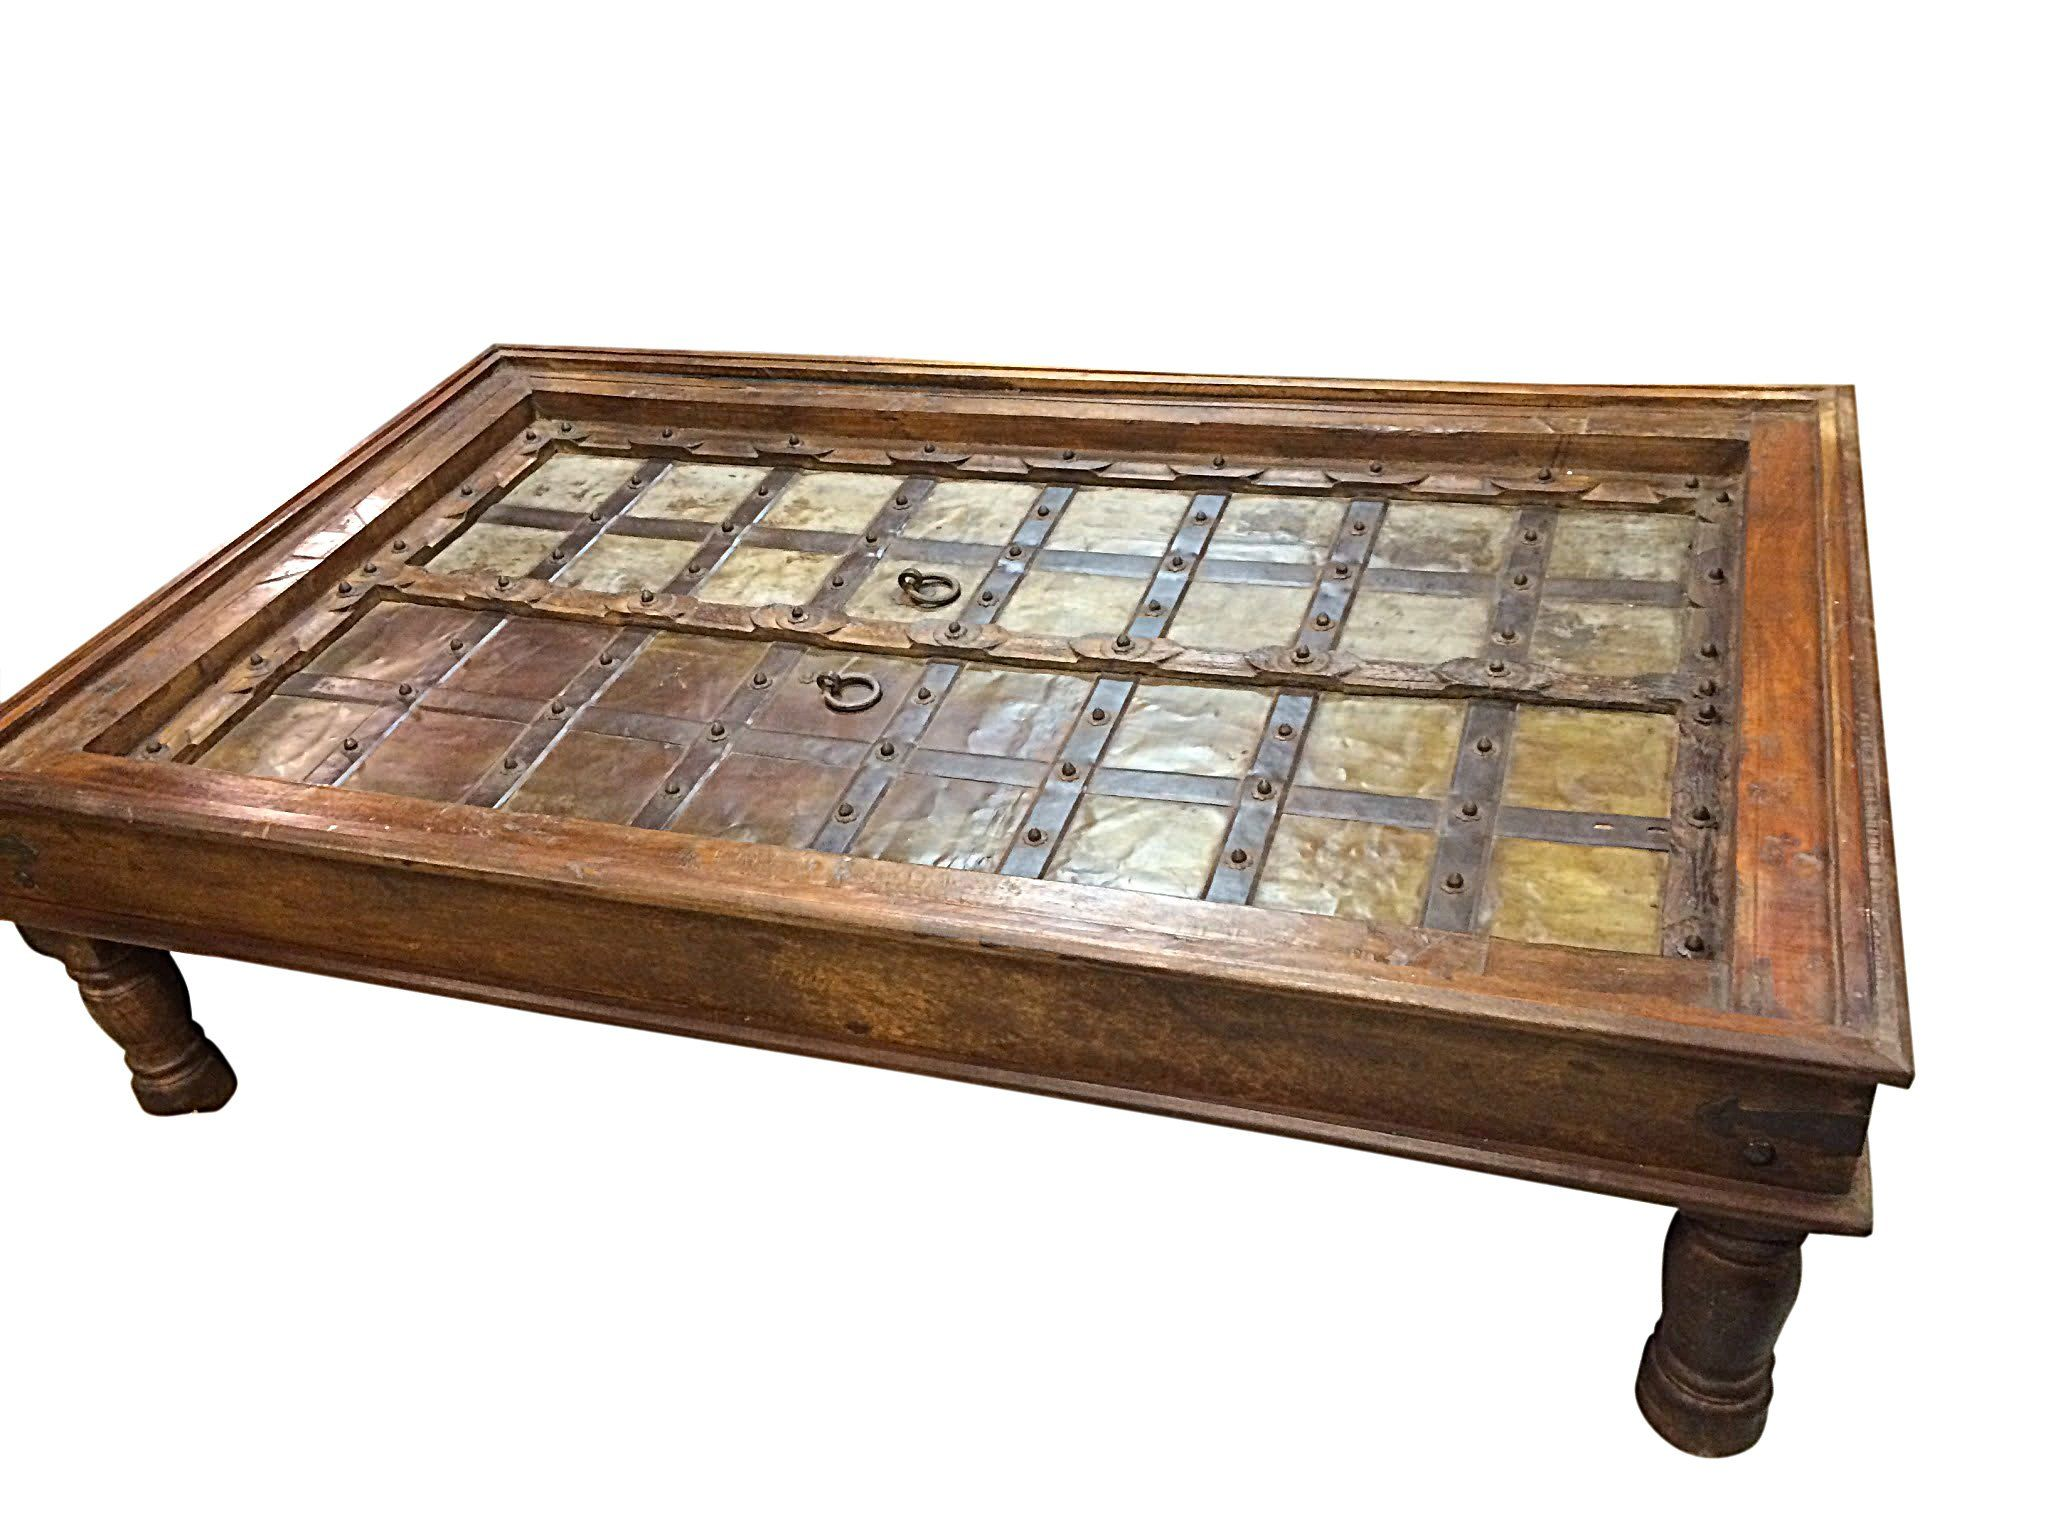 Antique Coffee Table Indian Furniture Handmade Wood Carving Mughal Indian Style Table Vintage